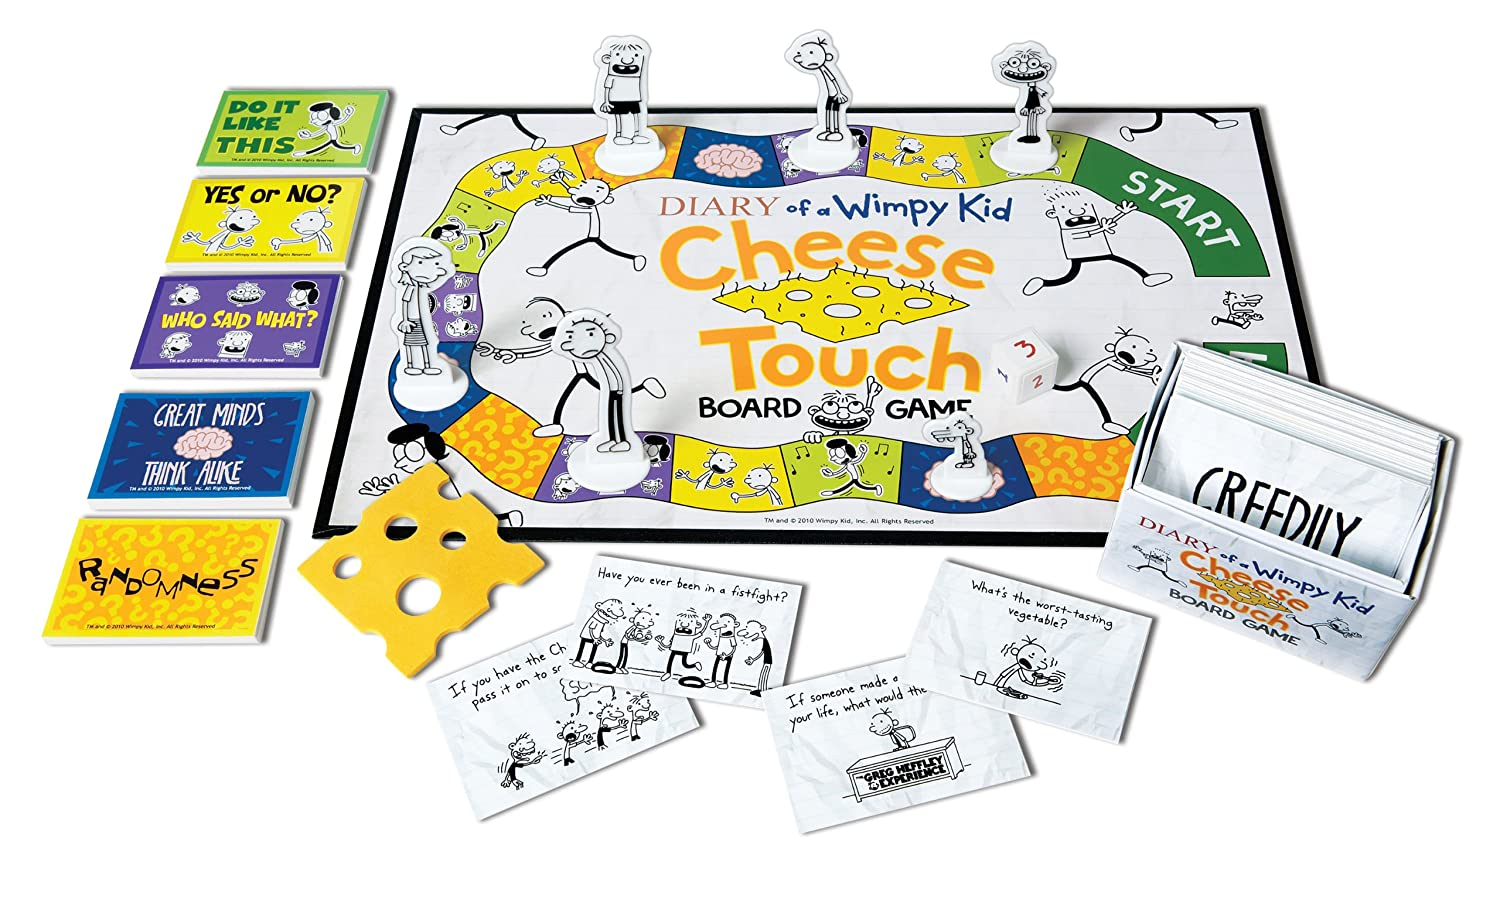 Amazon paul lamond games diary of a wimpy kid cheese touch amazon paul lamond games diary of a wimpy kid cheese touch board game toys games solutioingenieria Gallery